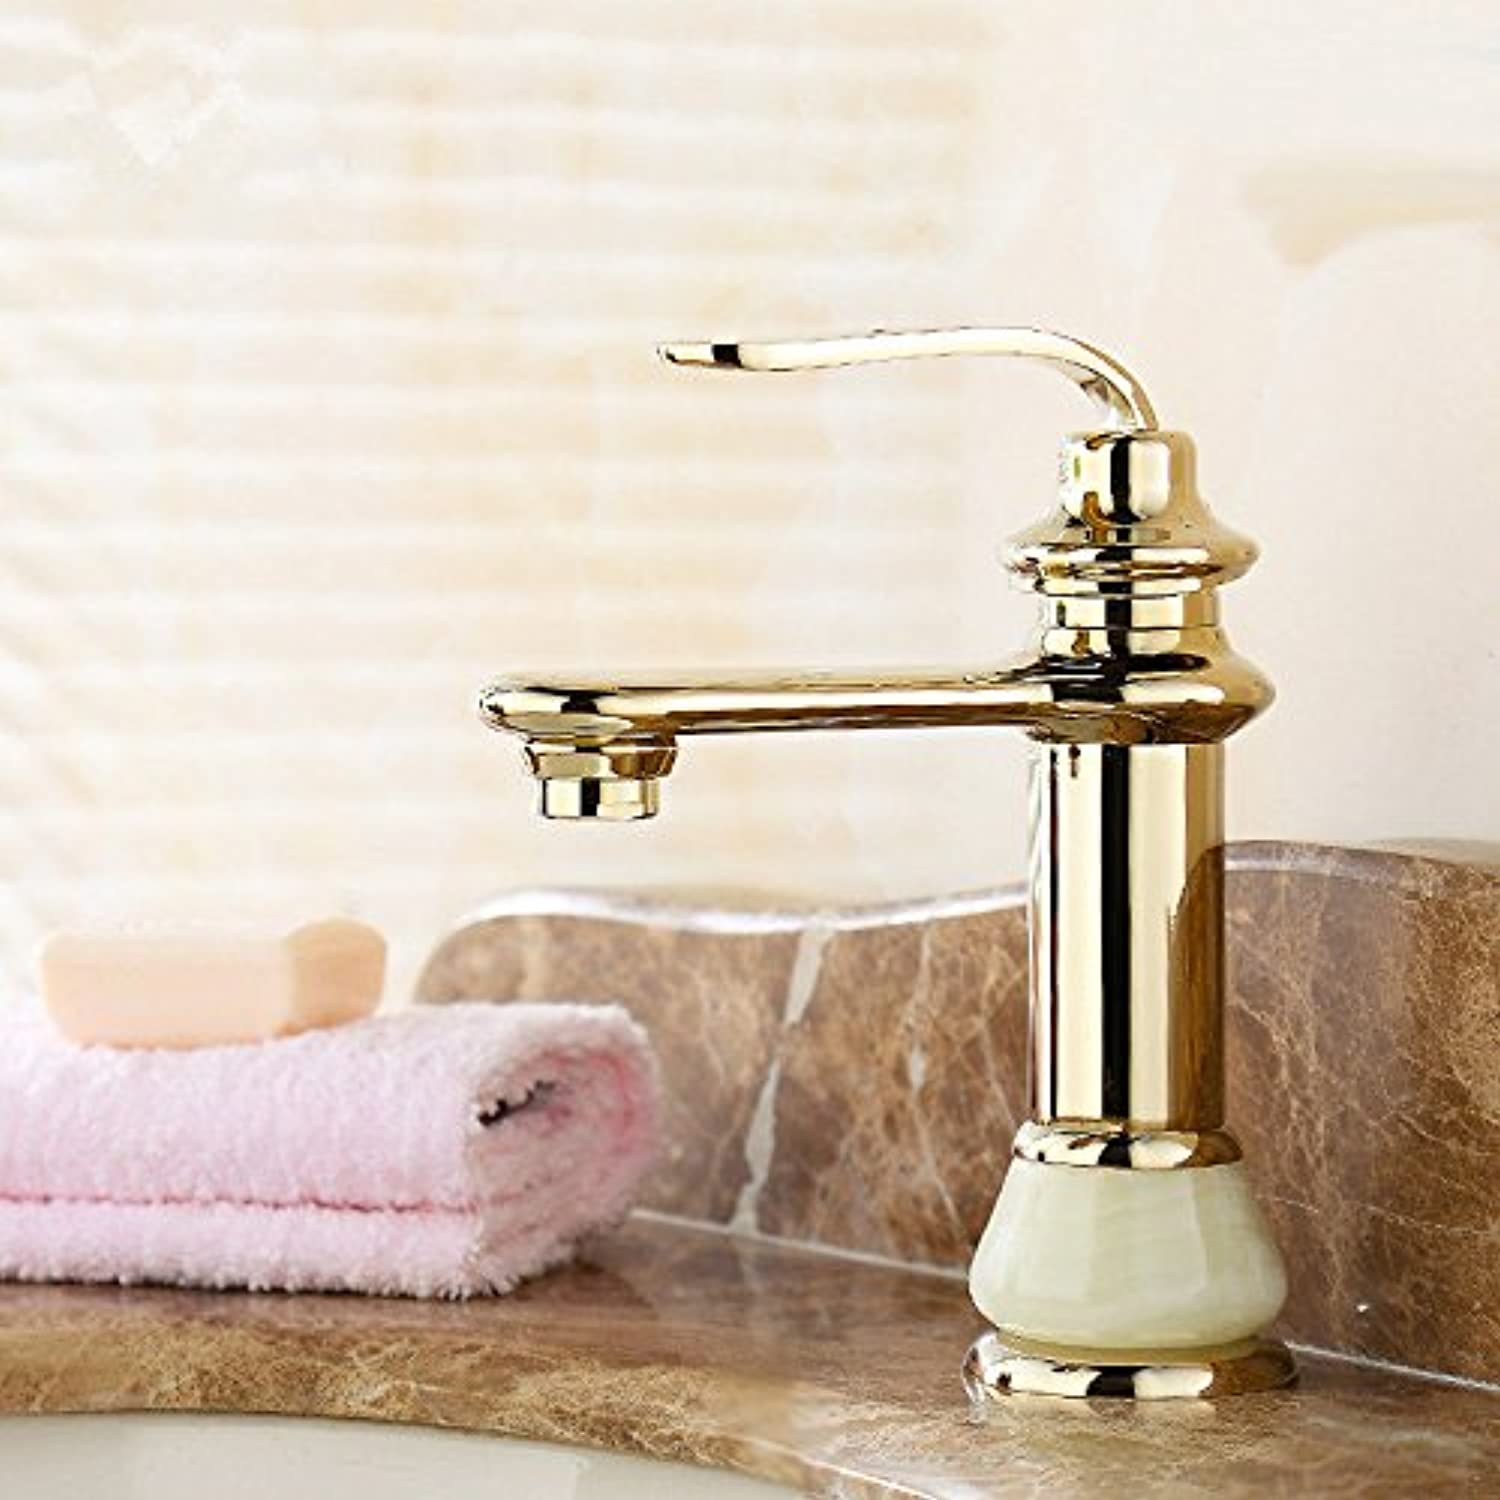 Lalaky Taps Faucet Kitchen Mixer Sink Waterfall Bathroom Mixer Basin Mixer Tap for Kitchen Bathroom and Washroom Copper Antique Hot and Cold Vintage gold